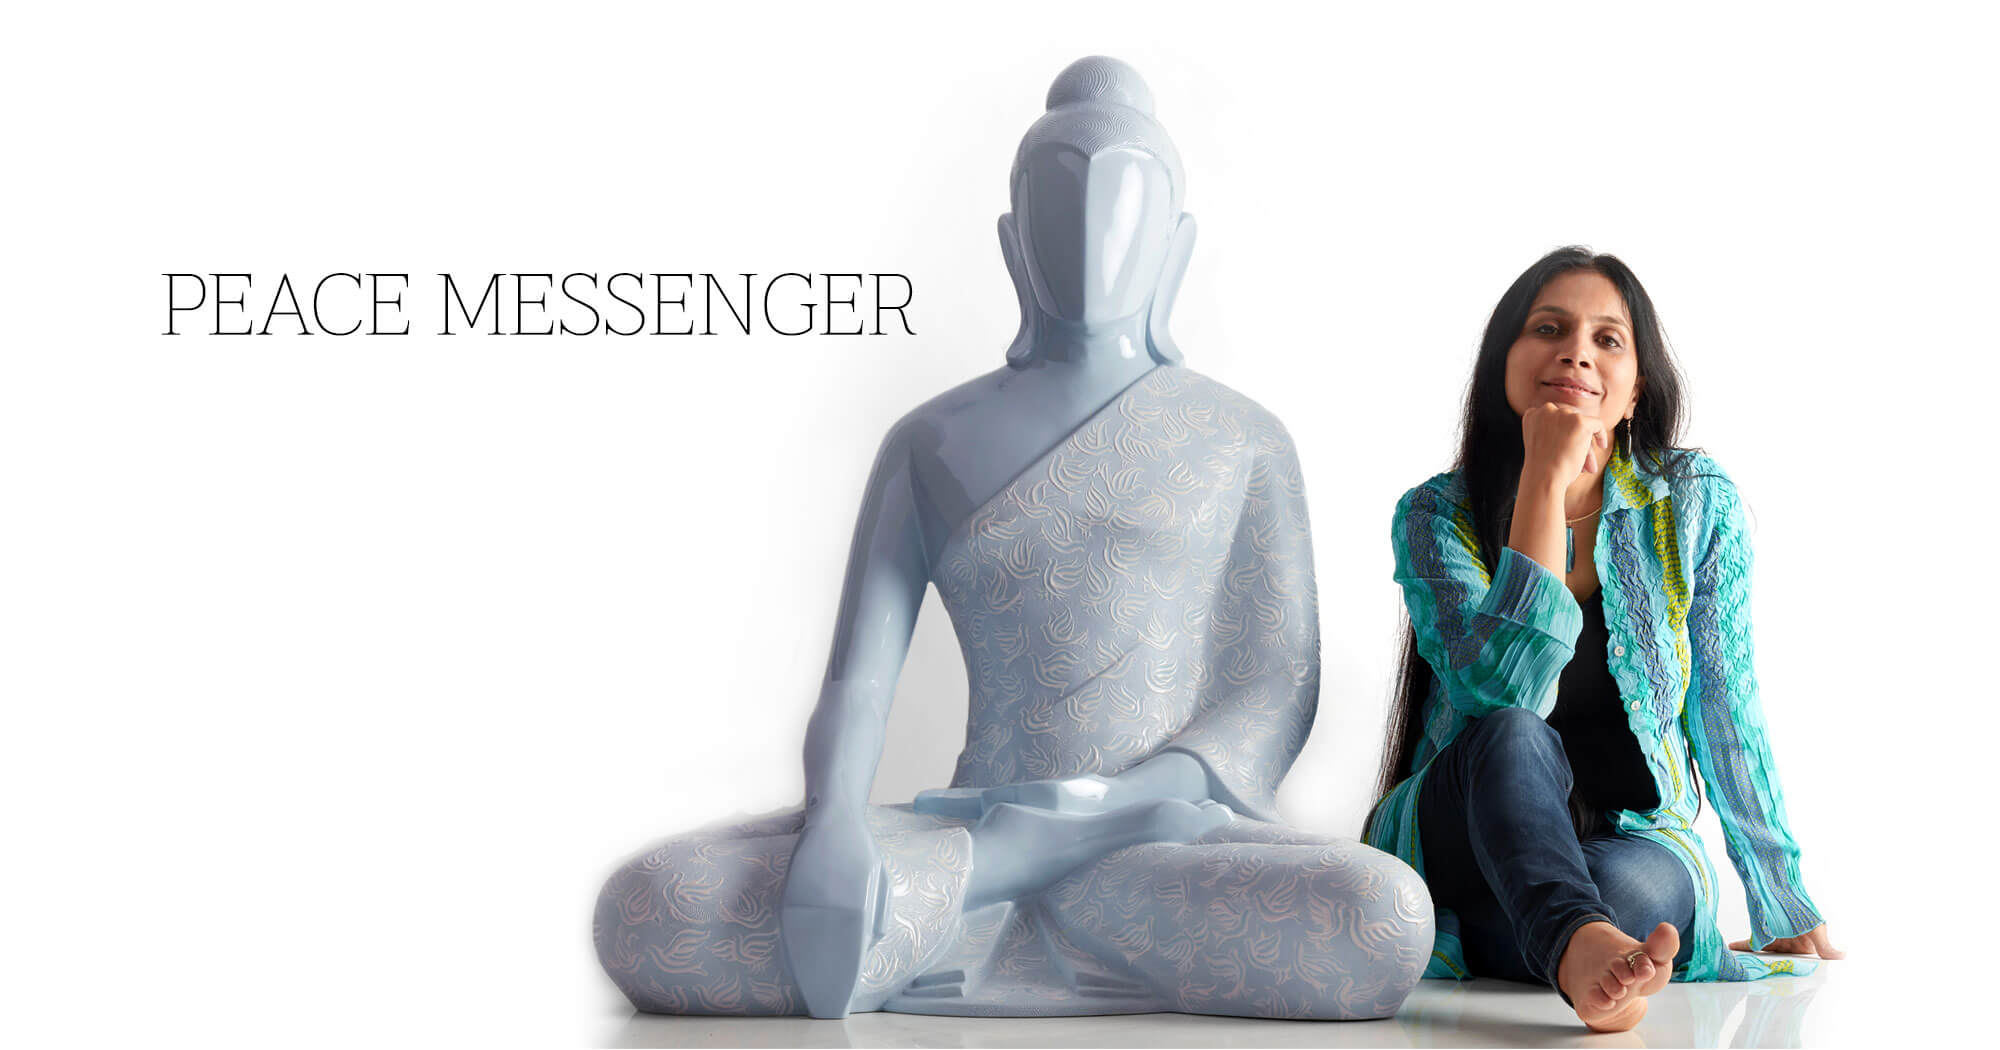 Buddha Bhoomi Peace messenger Sculpture, sculpted by Sangeeta Abhay